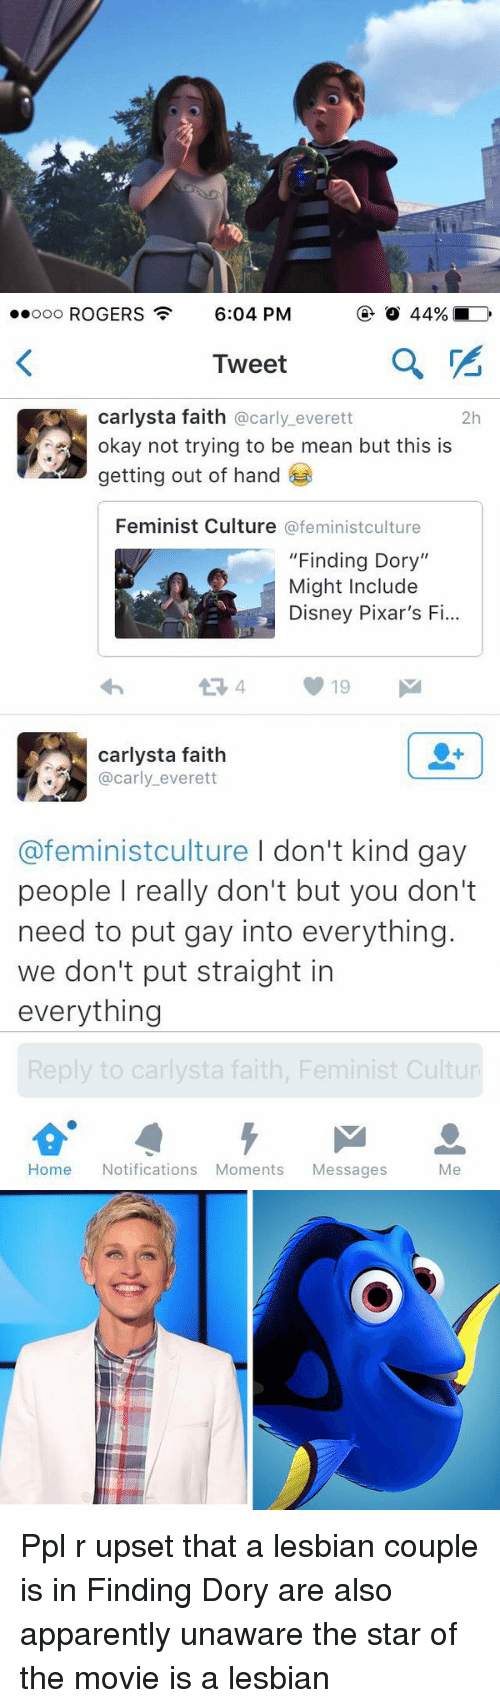 """Â'¨: ooooo ROGERS  6:04 PM  a  Tweet  Carlysta faith @carly everett  2h  okay not trying to be mean but this is  getting out of hand  Feminist Culture  @feminist culture  """"Finding Dory""""  Might Include  Disney Pixar's F  carlysta faith  @carly everett  @feminist culture I don't kind gay  people really don't but you don't  need to put gay into everything.  we don't put straight in  everything  Reply to carlysta faith, Feminist Cultur  Home Notifications Moments Messages  Me Ppl r upset that a lesbian couple is in Finding Dory are also apparently unaware the star of the movie is a lesbian"""